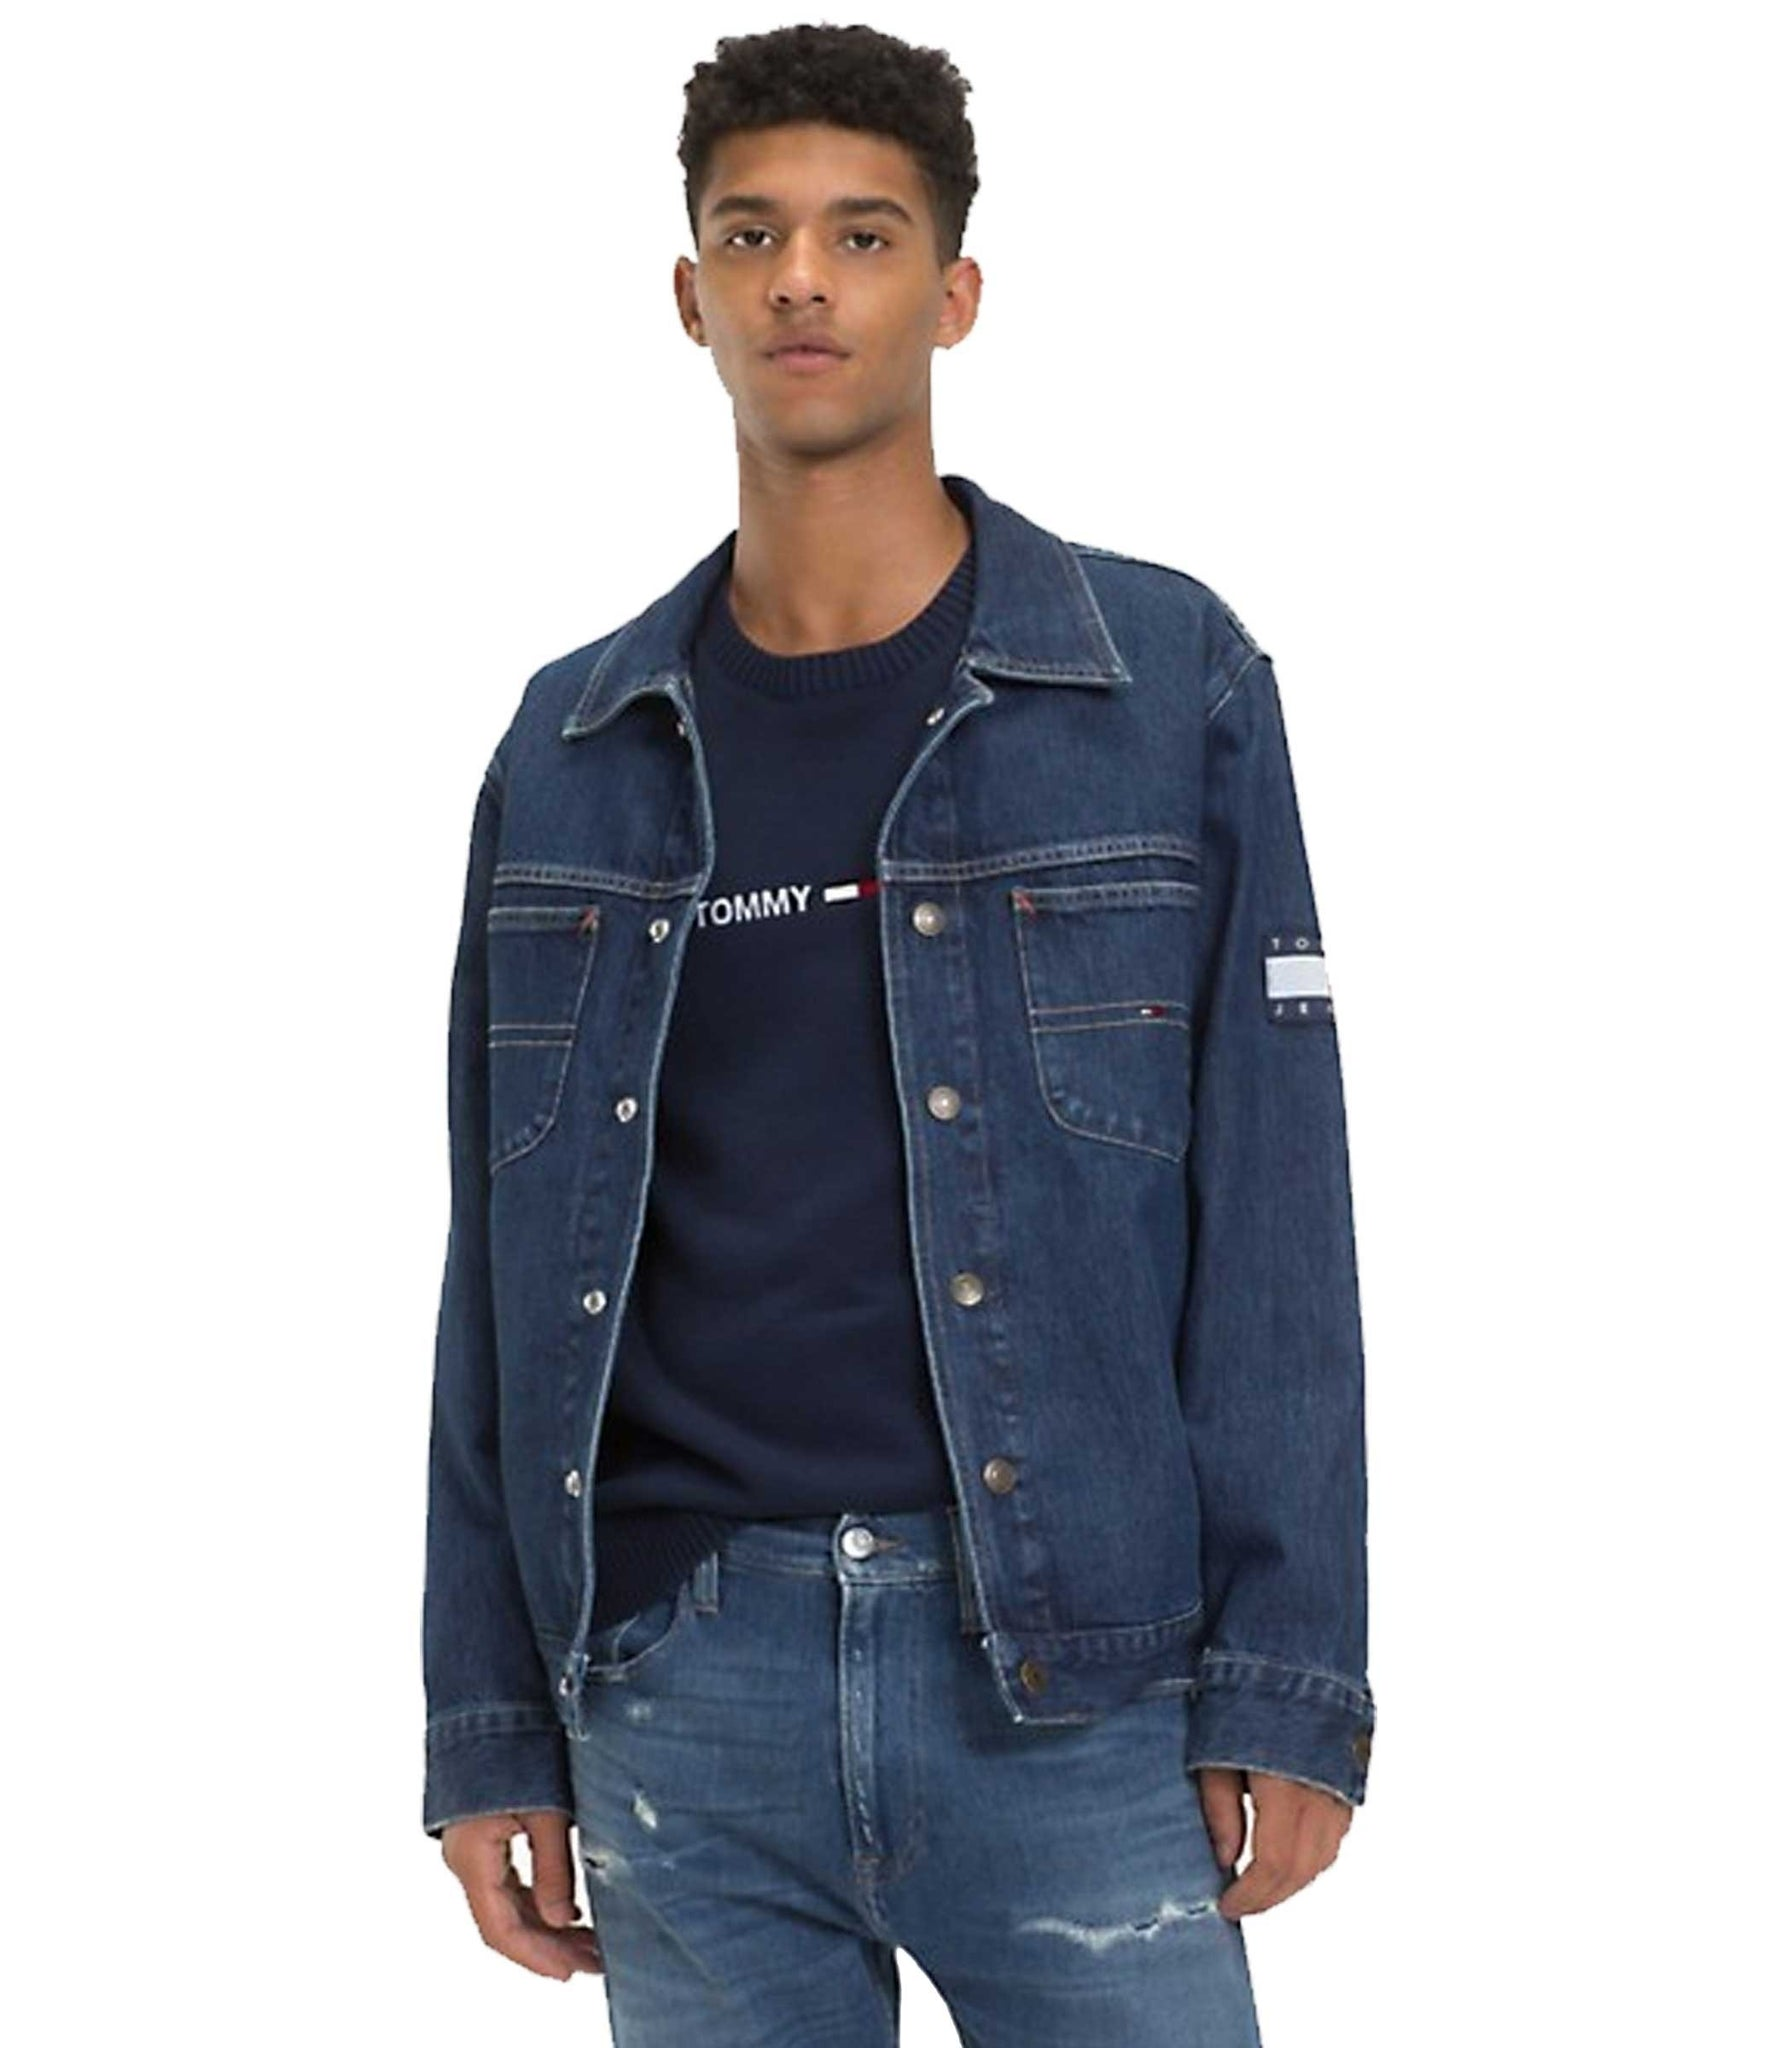 373742990c Tommy Hilfiger Giacca Oversize In Denim / Inside Store